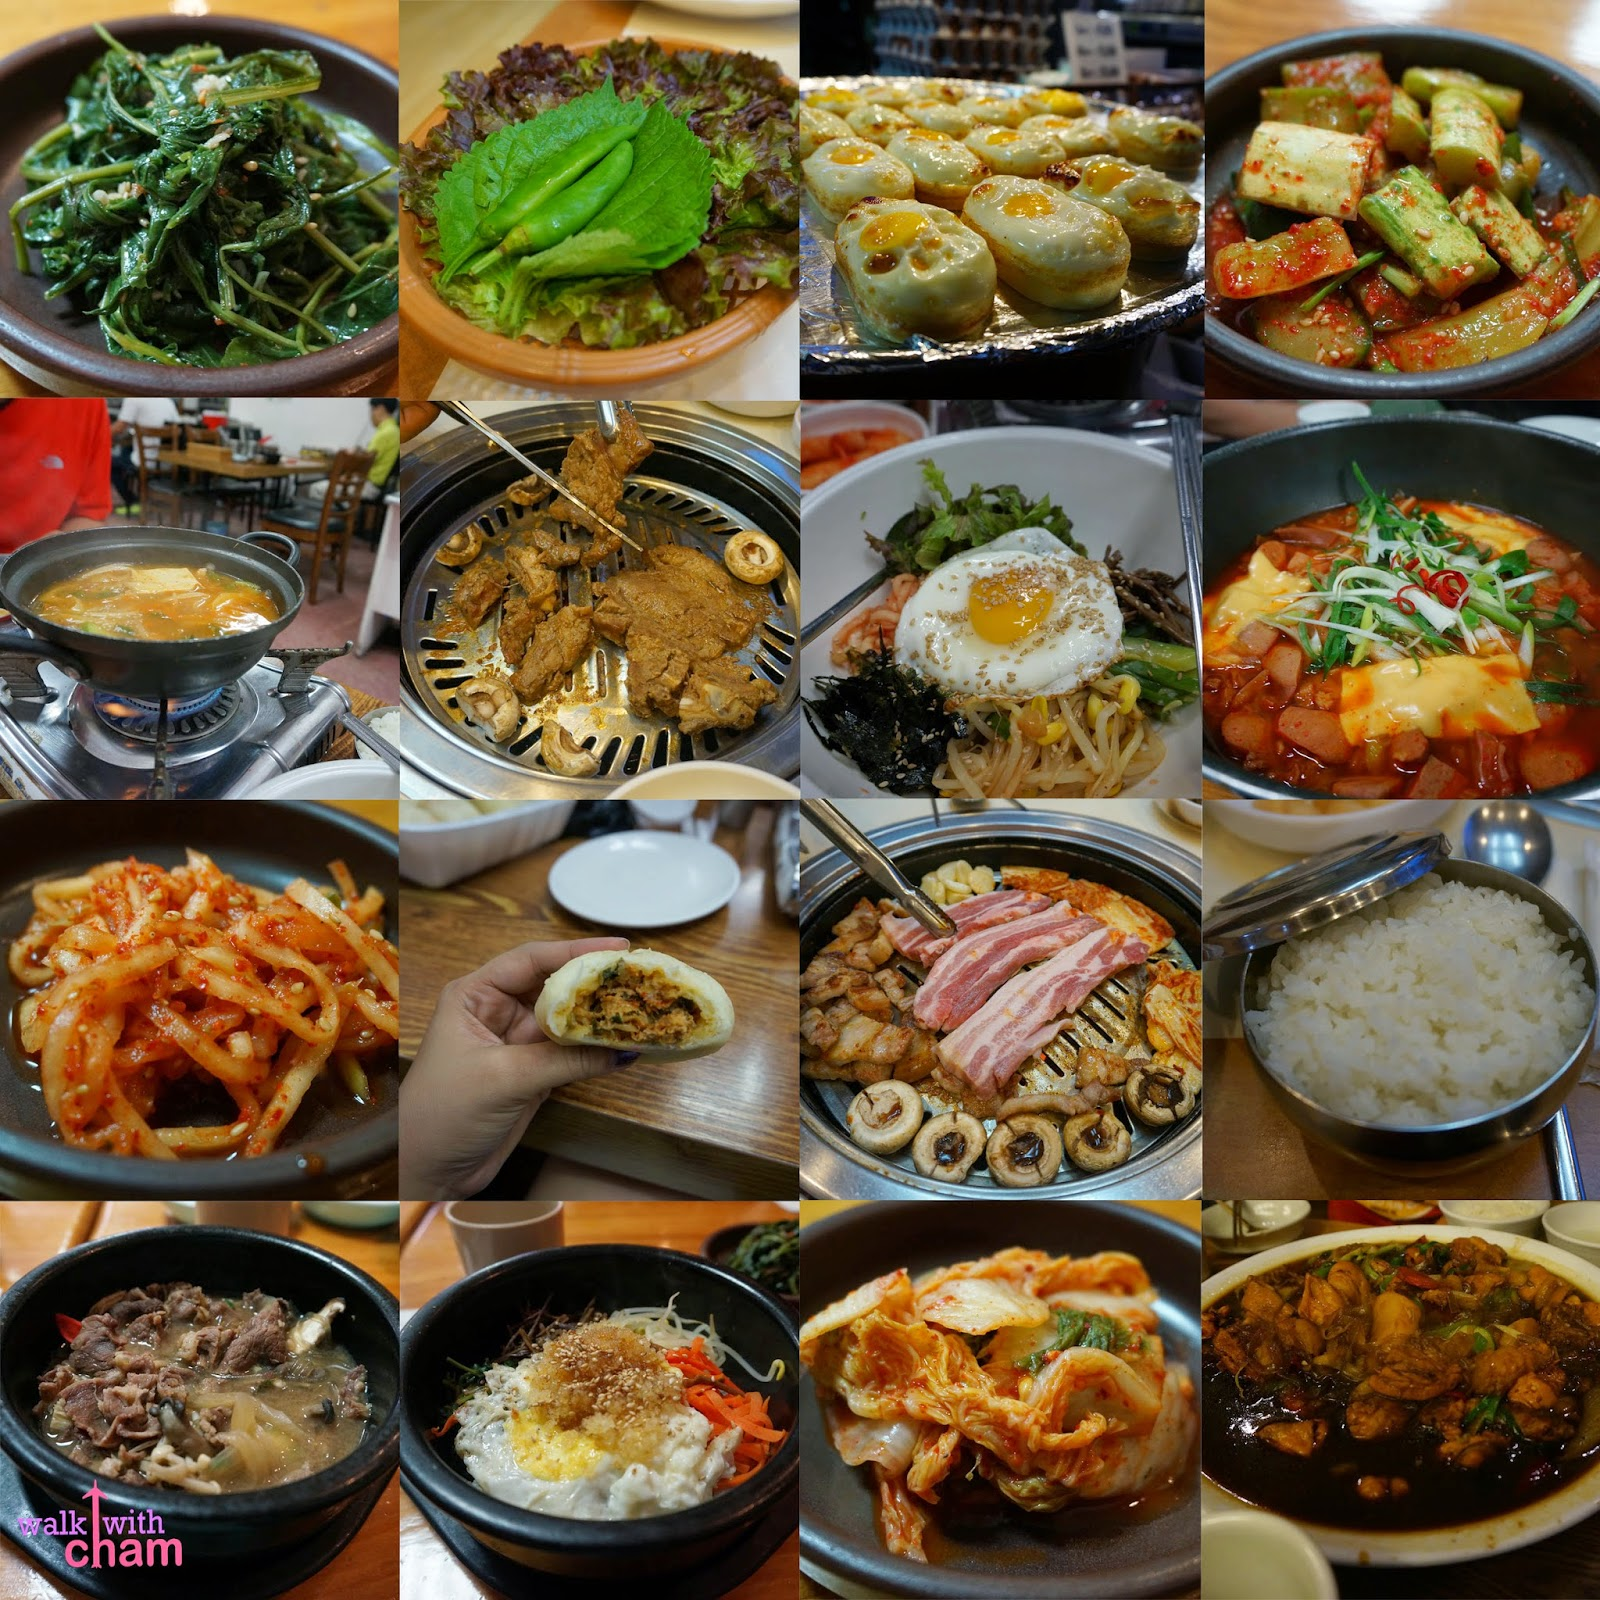 walk with cham what to eat in seoul south korea. Black Bedroom Furniture Sets. Home Design Ideas